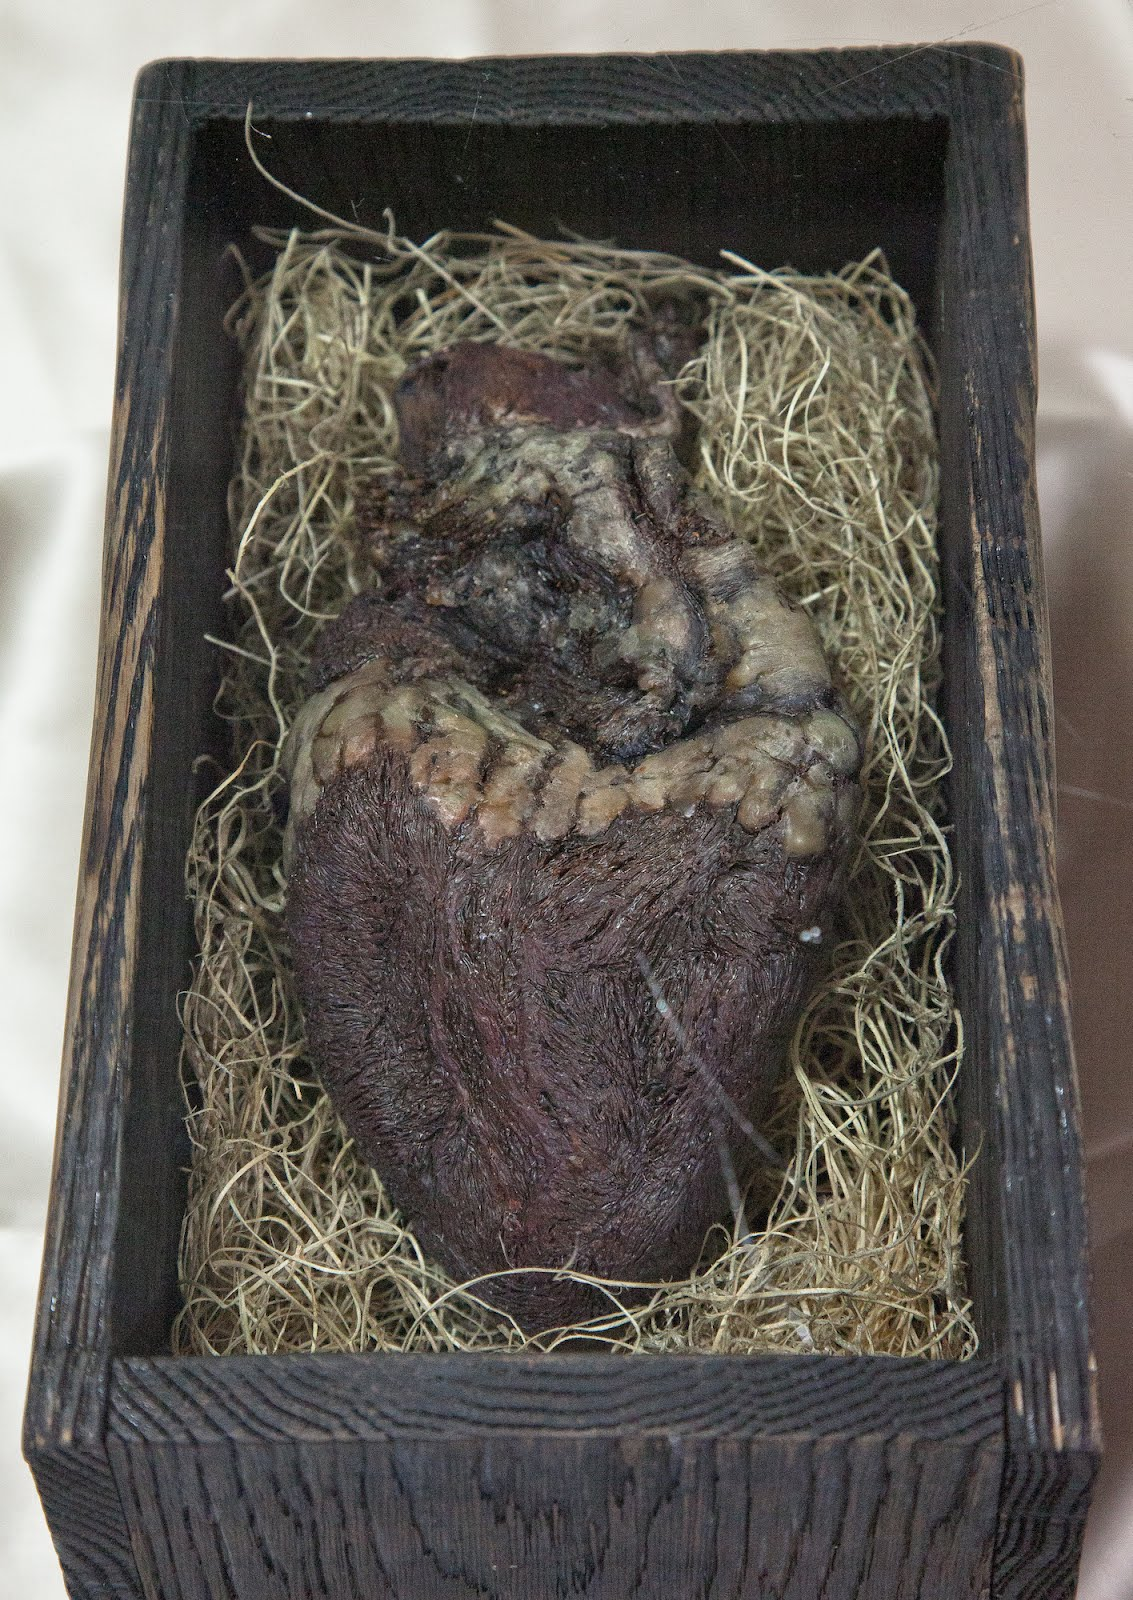 Propnomicon: The Heart of Hrungnir